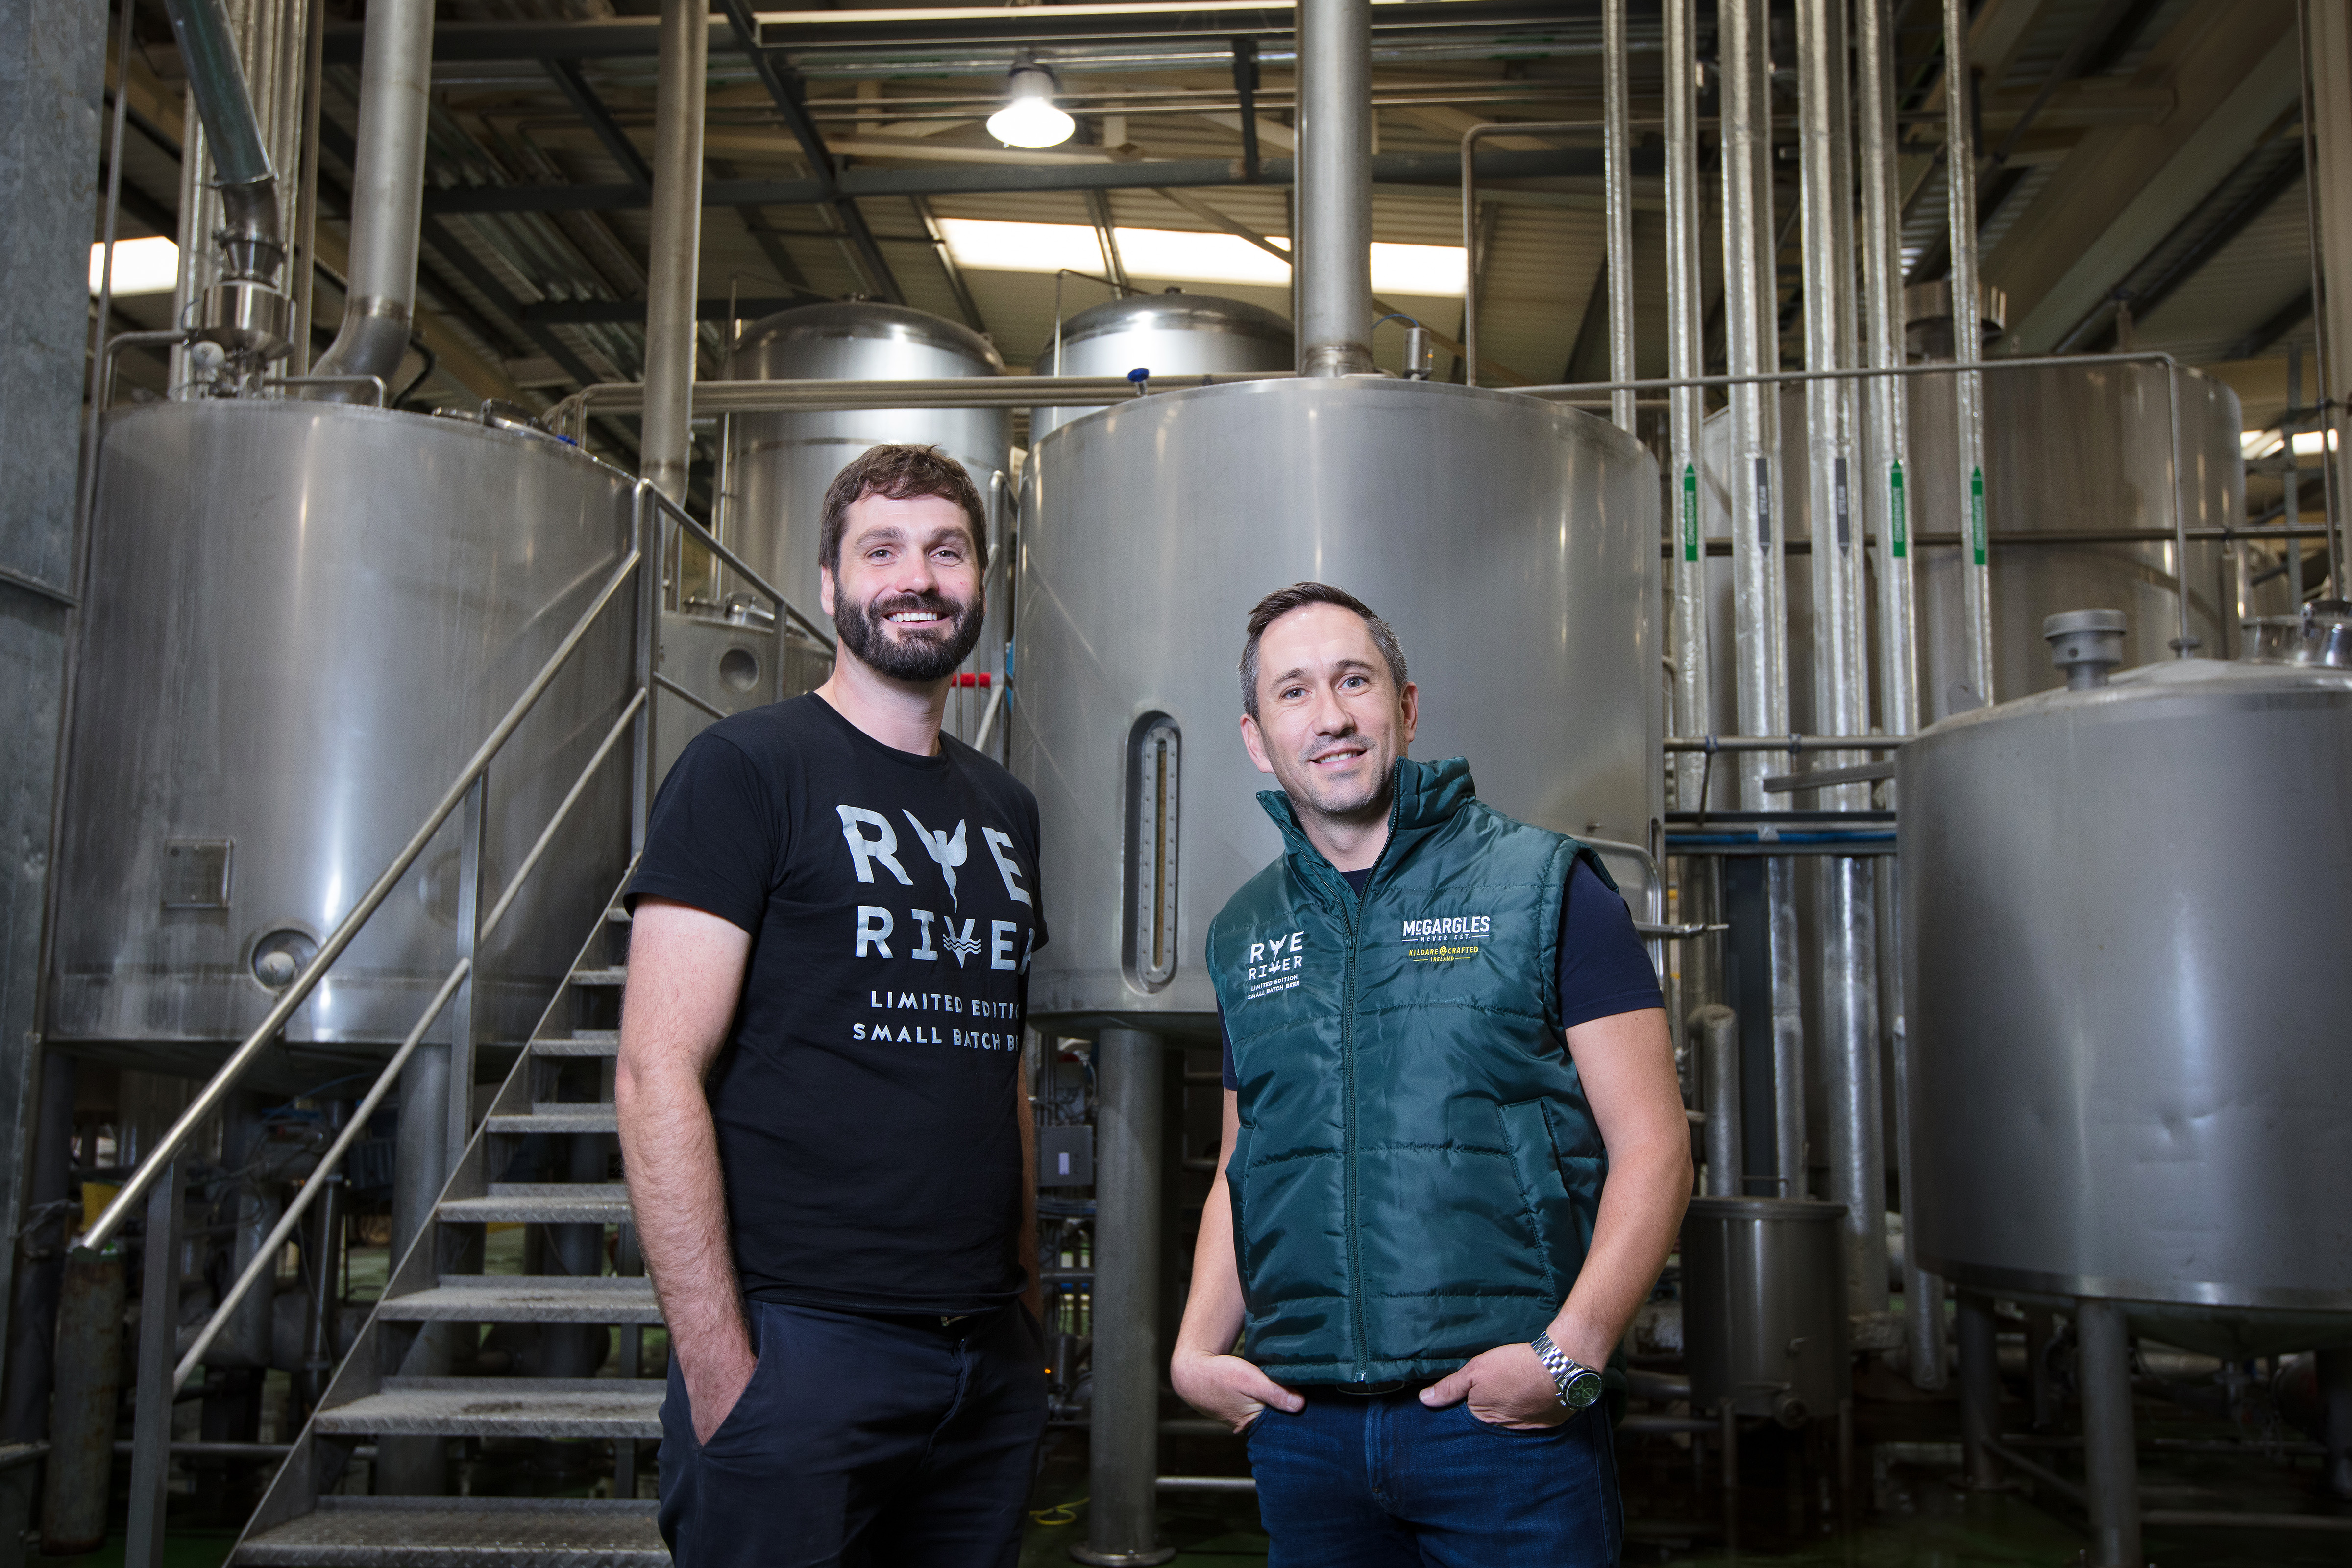 Rye River Brewing Company returns to operating profitability